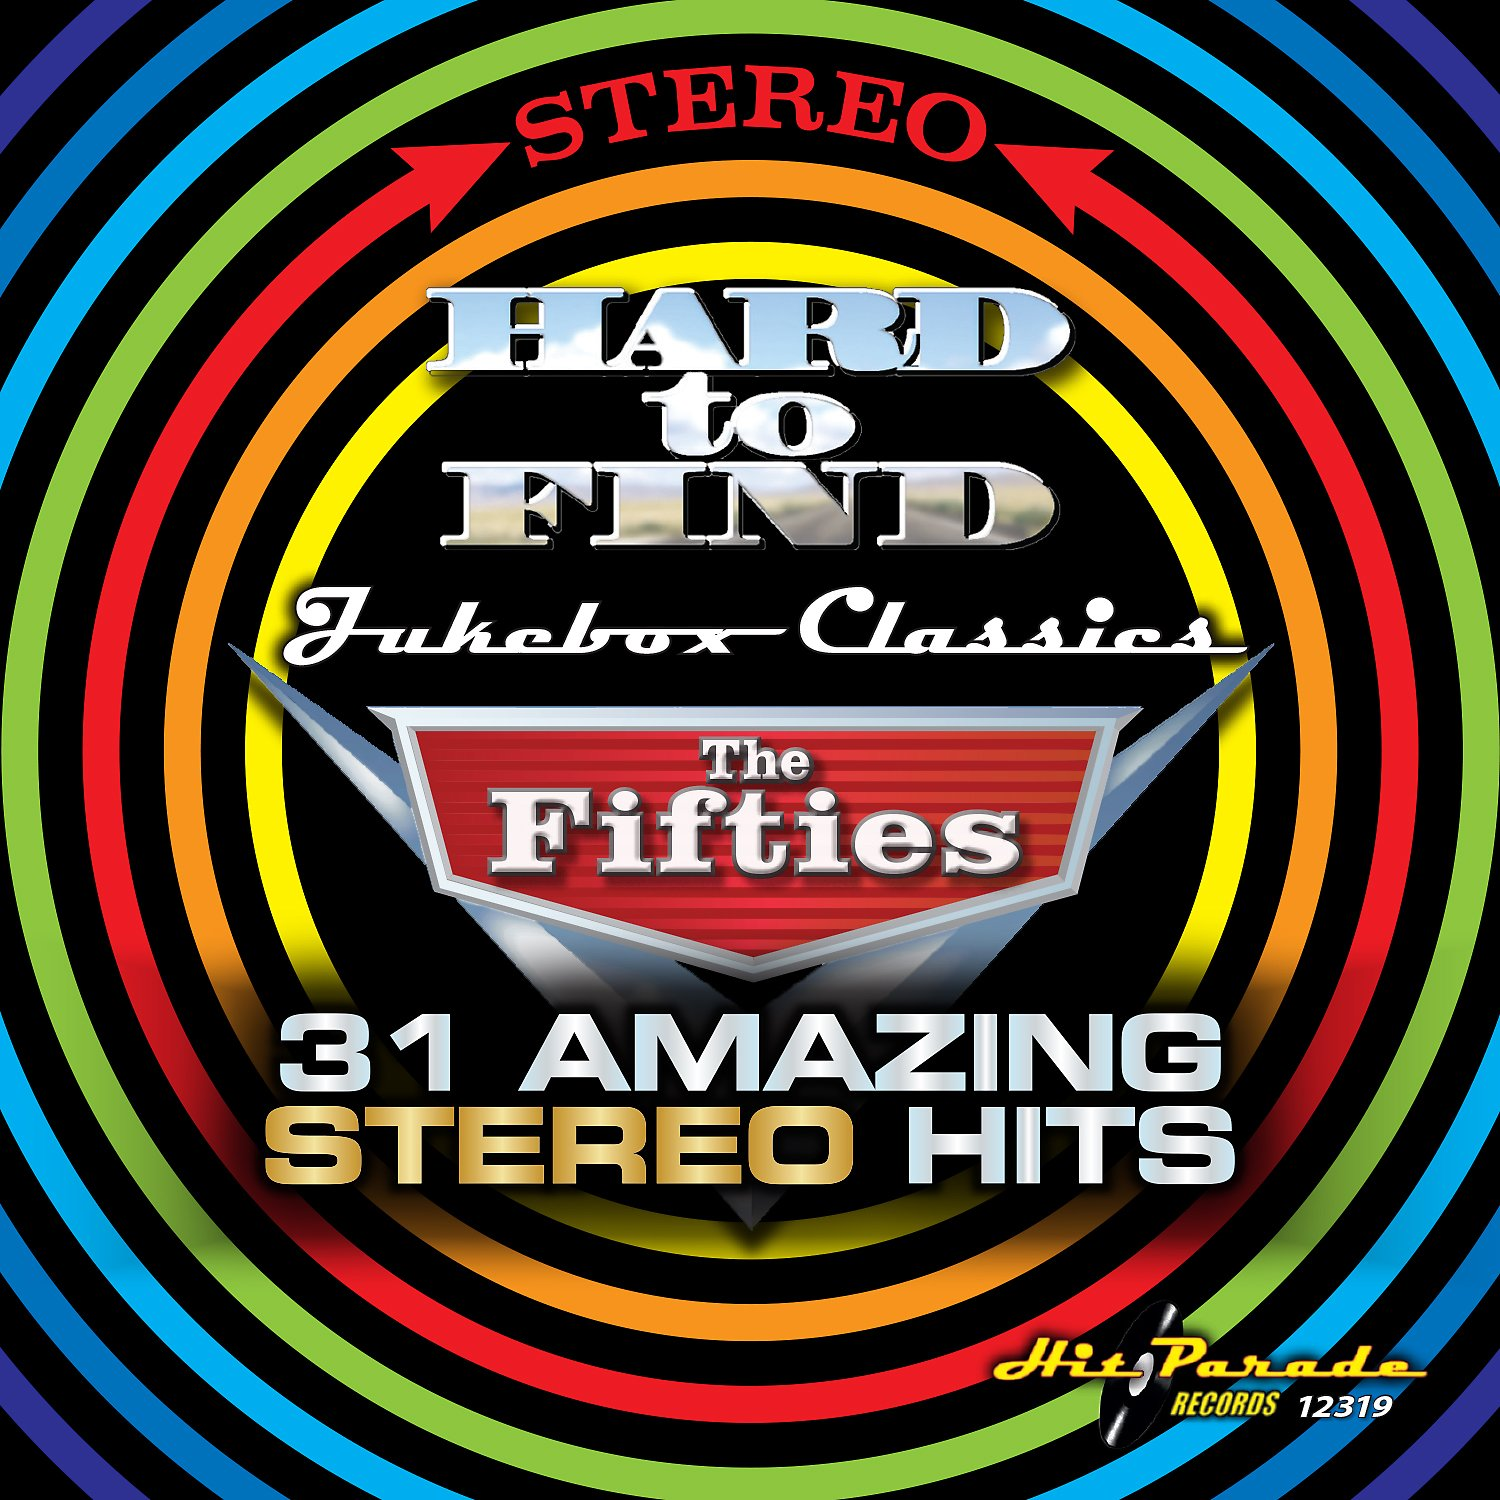 Hard To Find Jukebox Classics, The Fifties: 31 Amazing Stereo Hits by Hit Parade